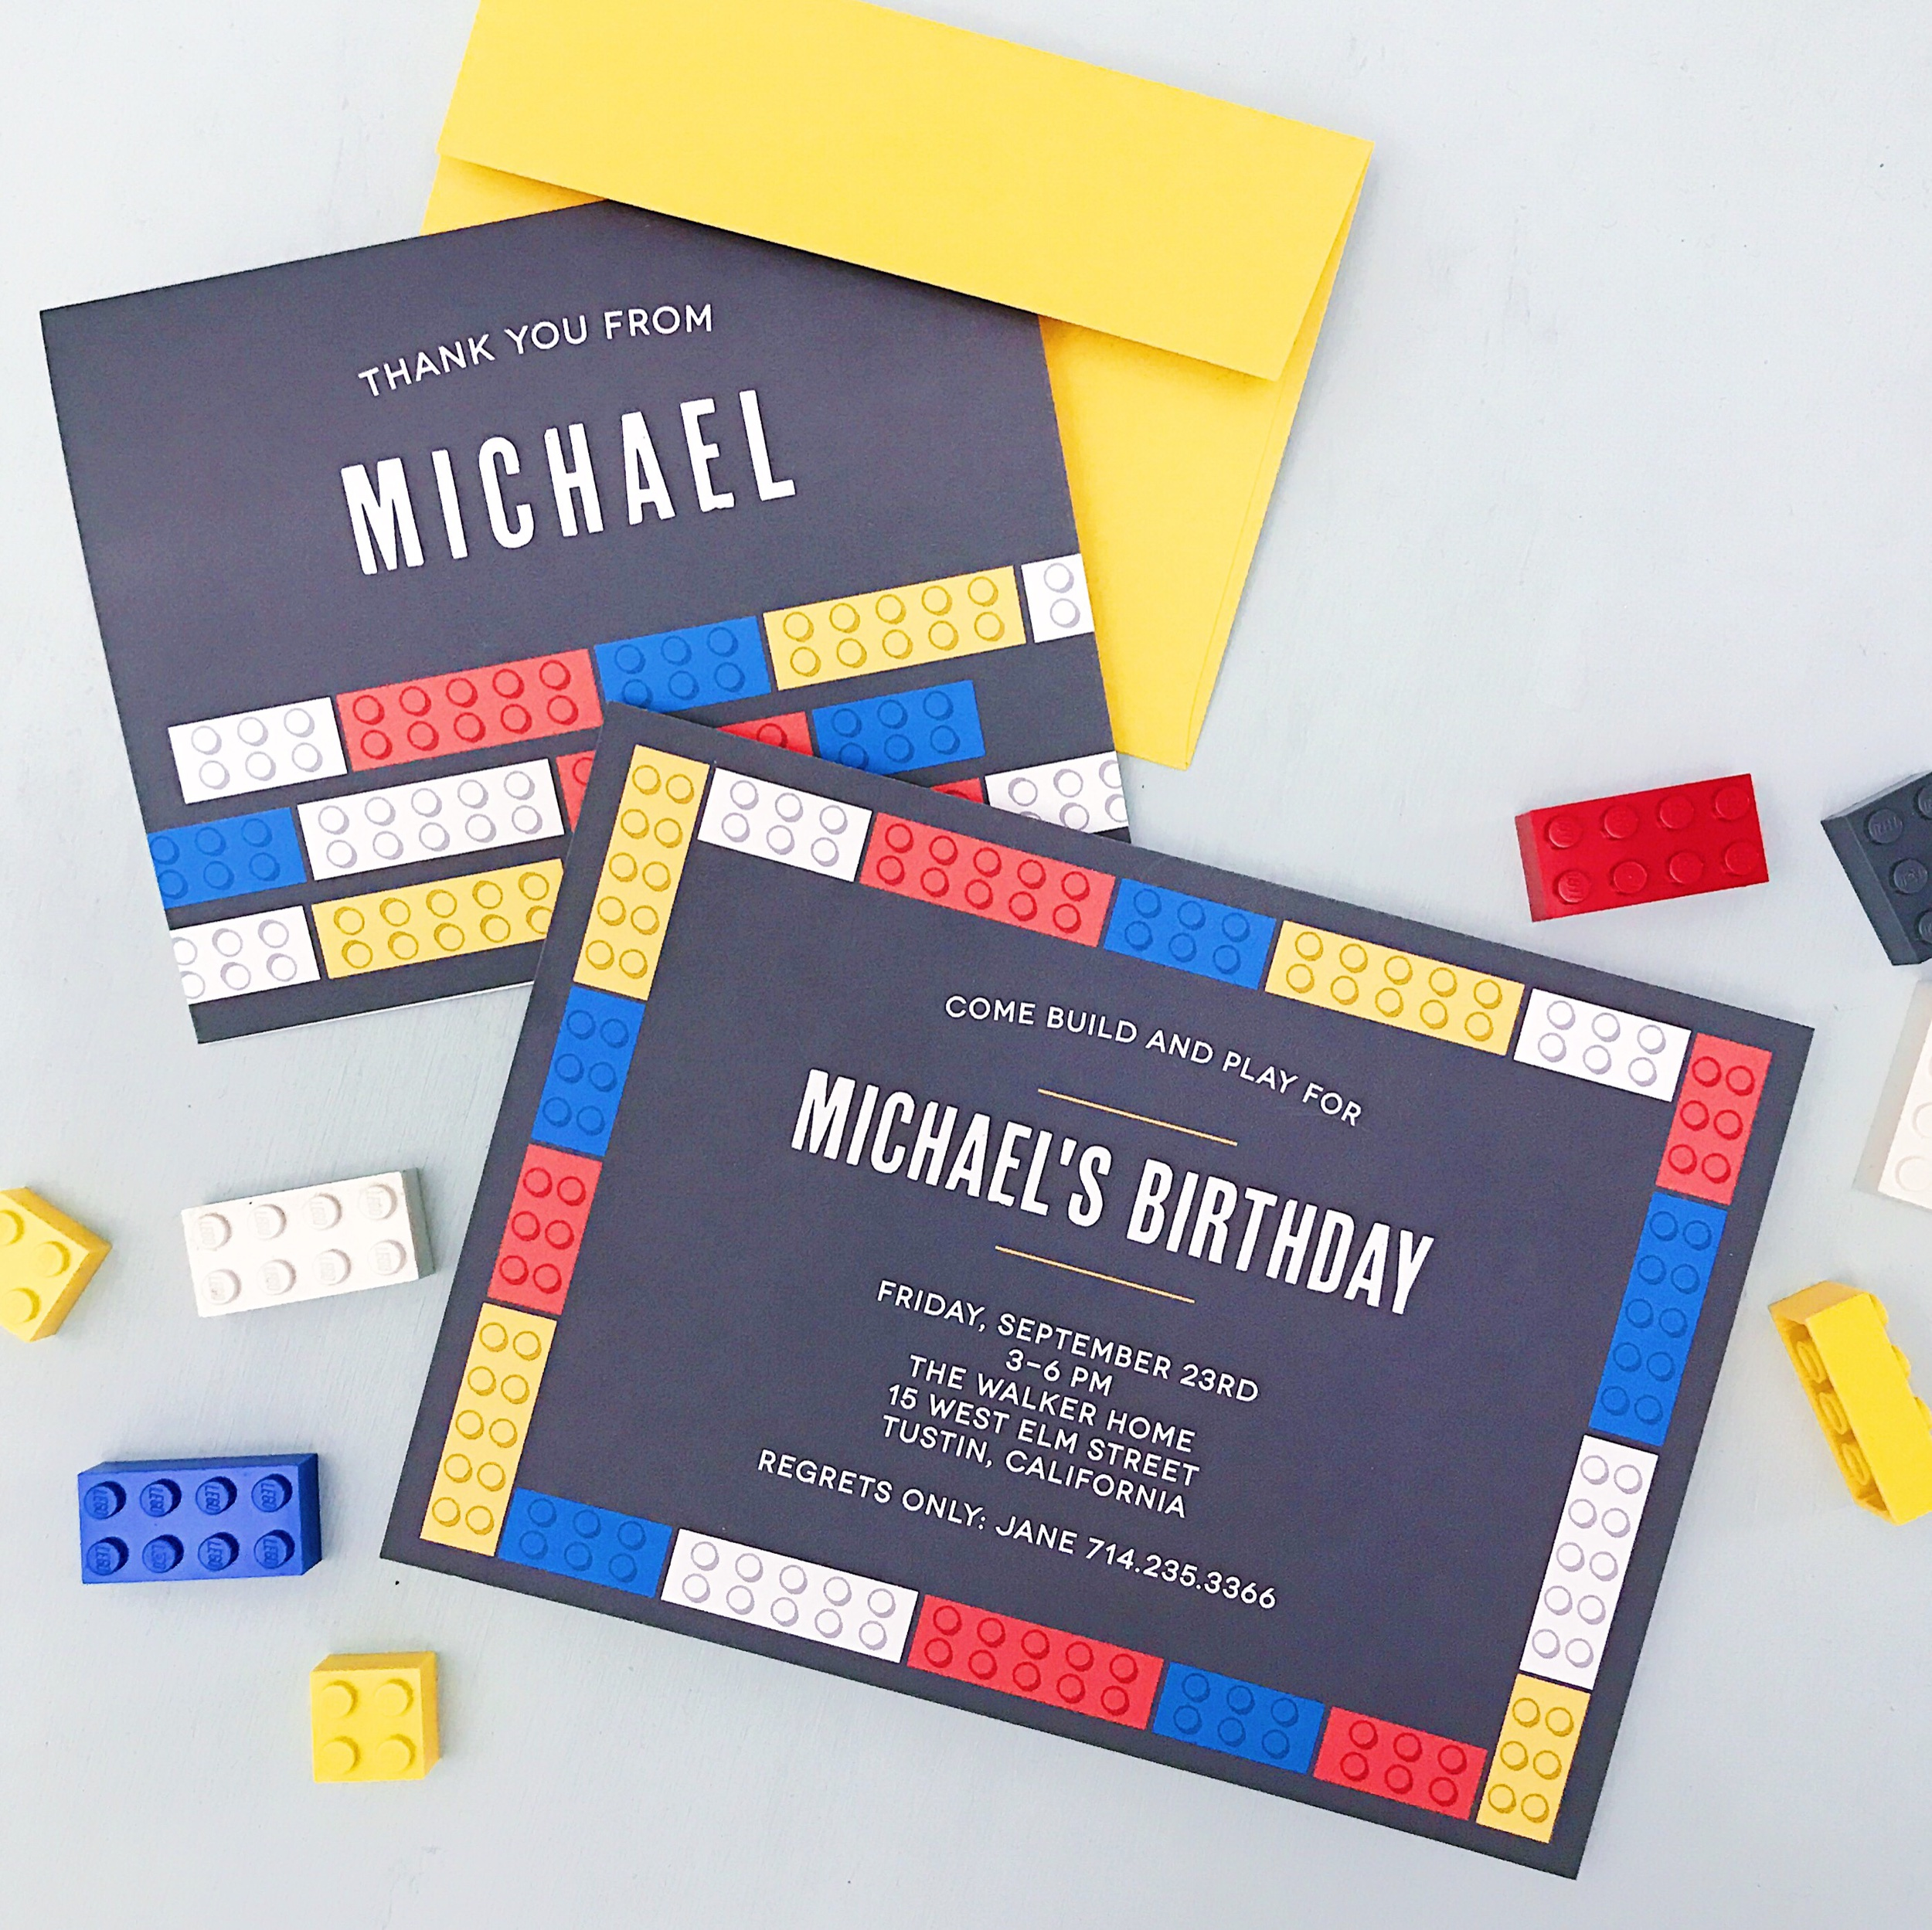 There's more! - See more cool birthday party invitation designs at BasicInvite.com.